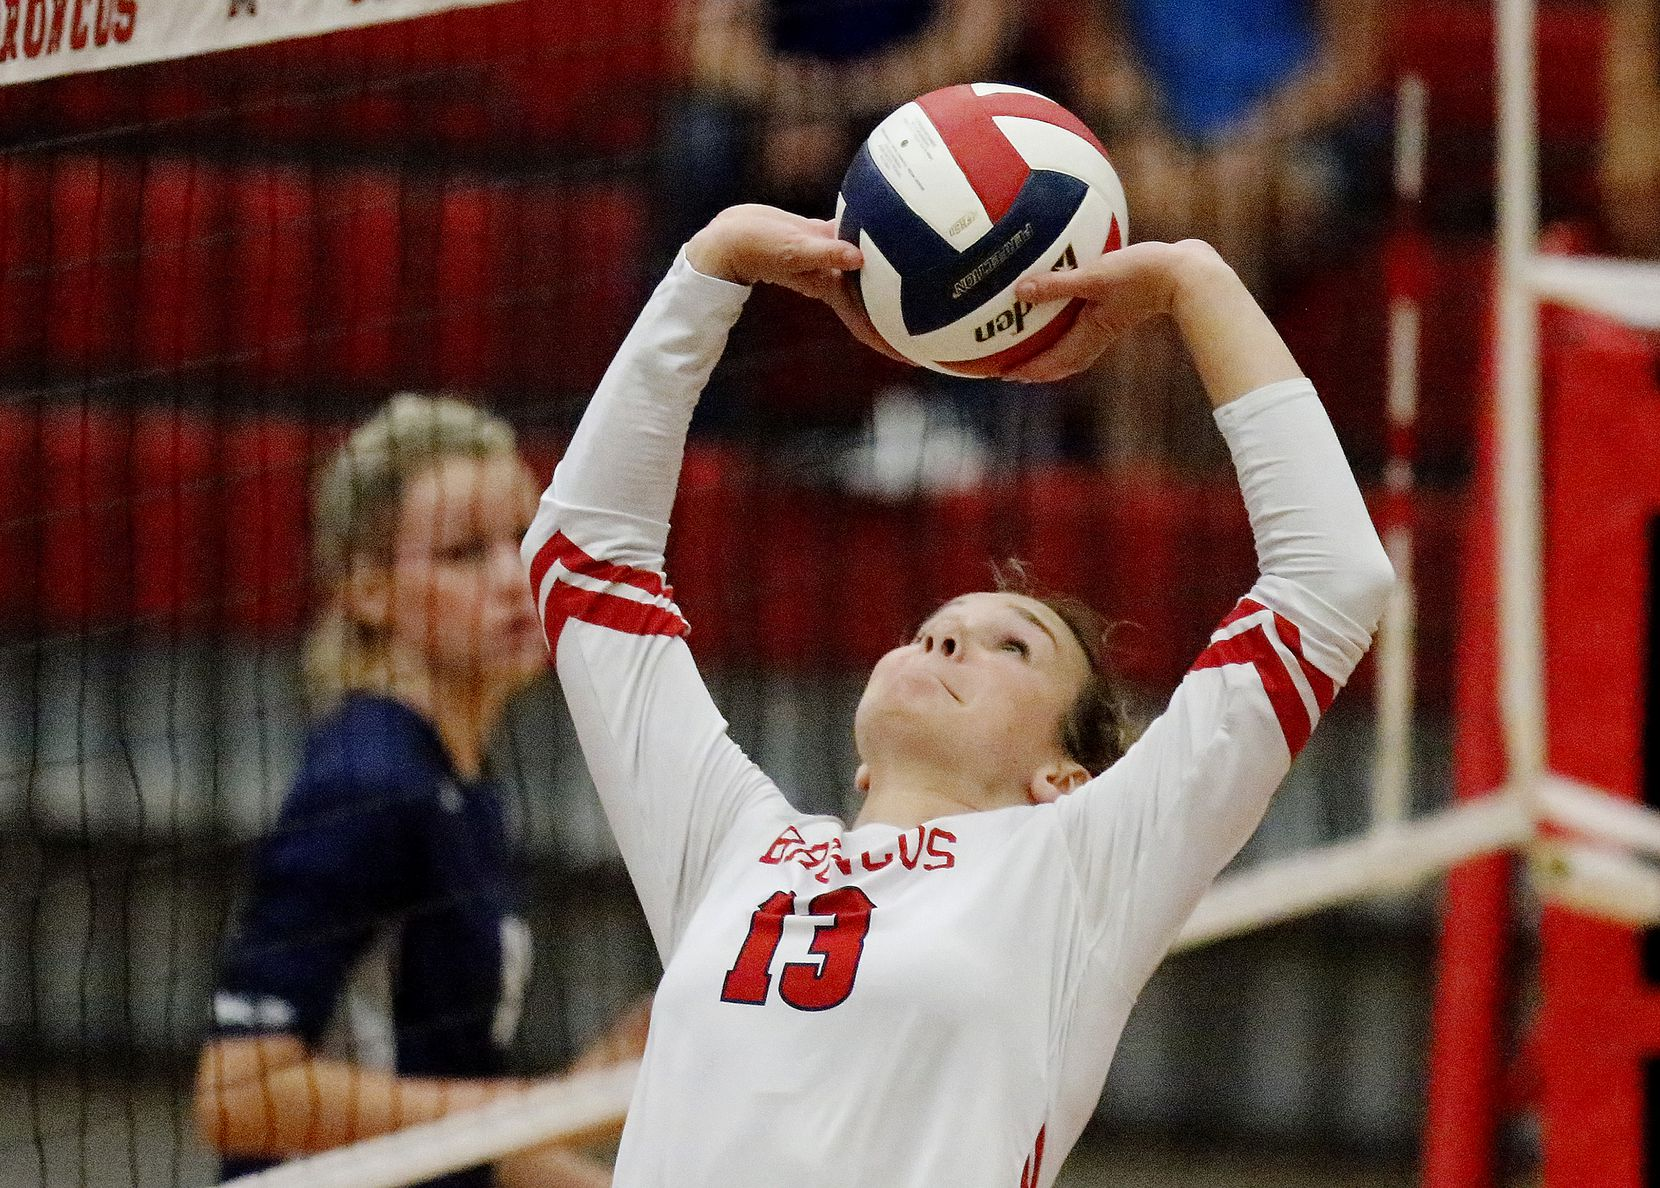 McKinney Boyd High School setter Camryn Weldon (13) makes a set on the run during game two as McKinney Boyd High School hosted Flower Mound High School at McKinney Boyd High School on Tuesday evening, September 7, 2021. (Stewart F. House/Special Contributor)